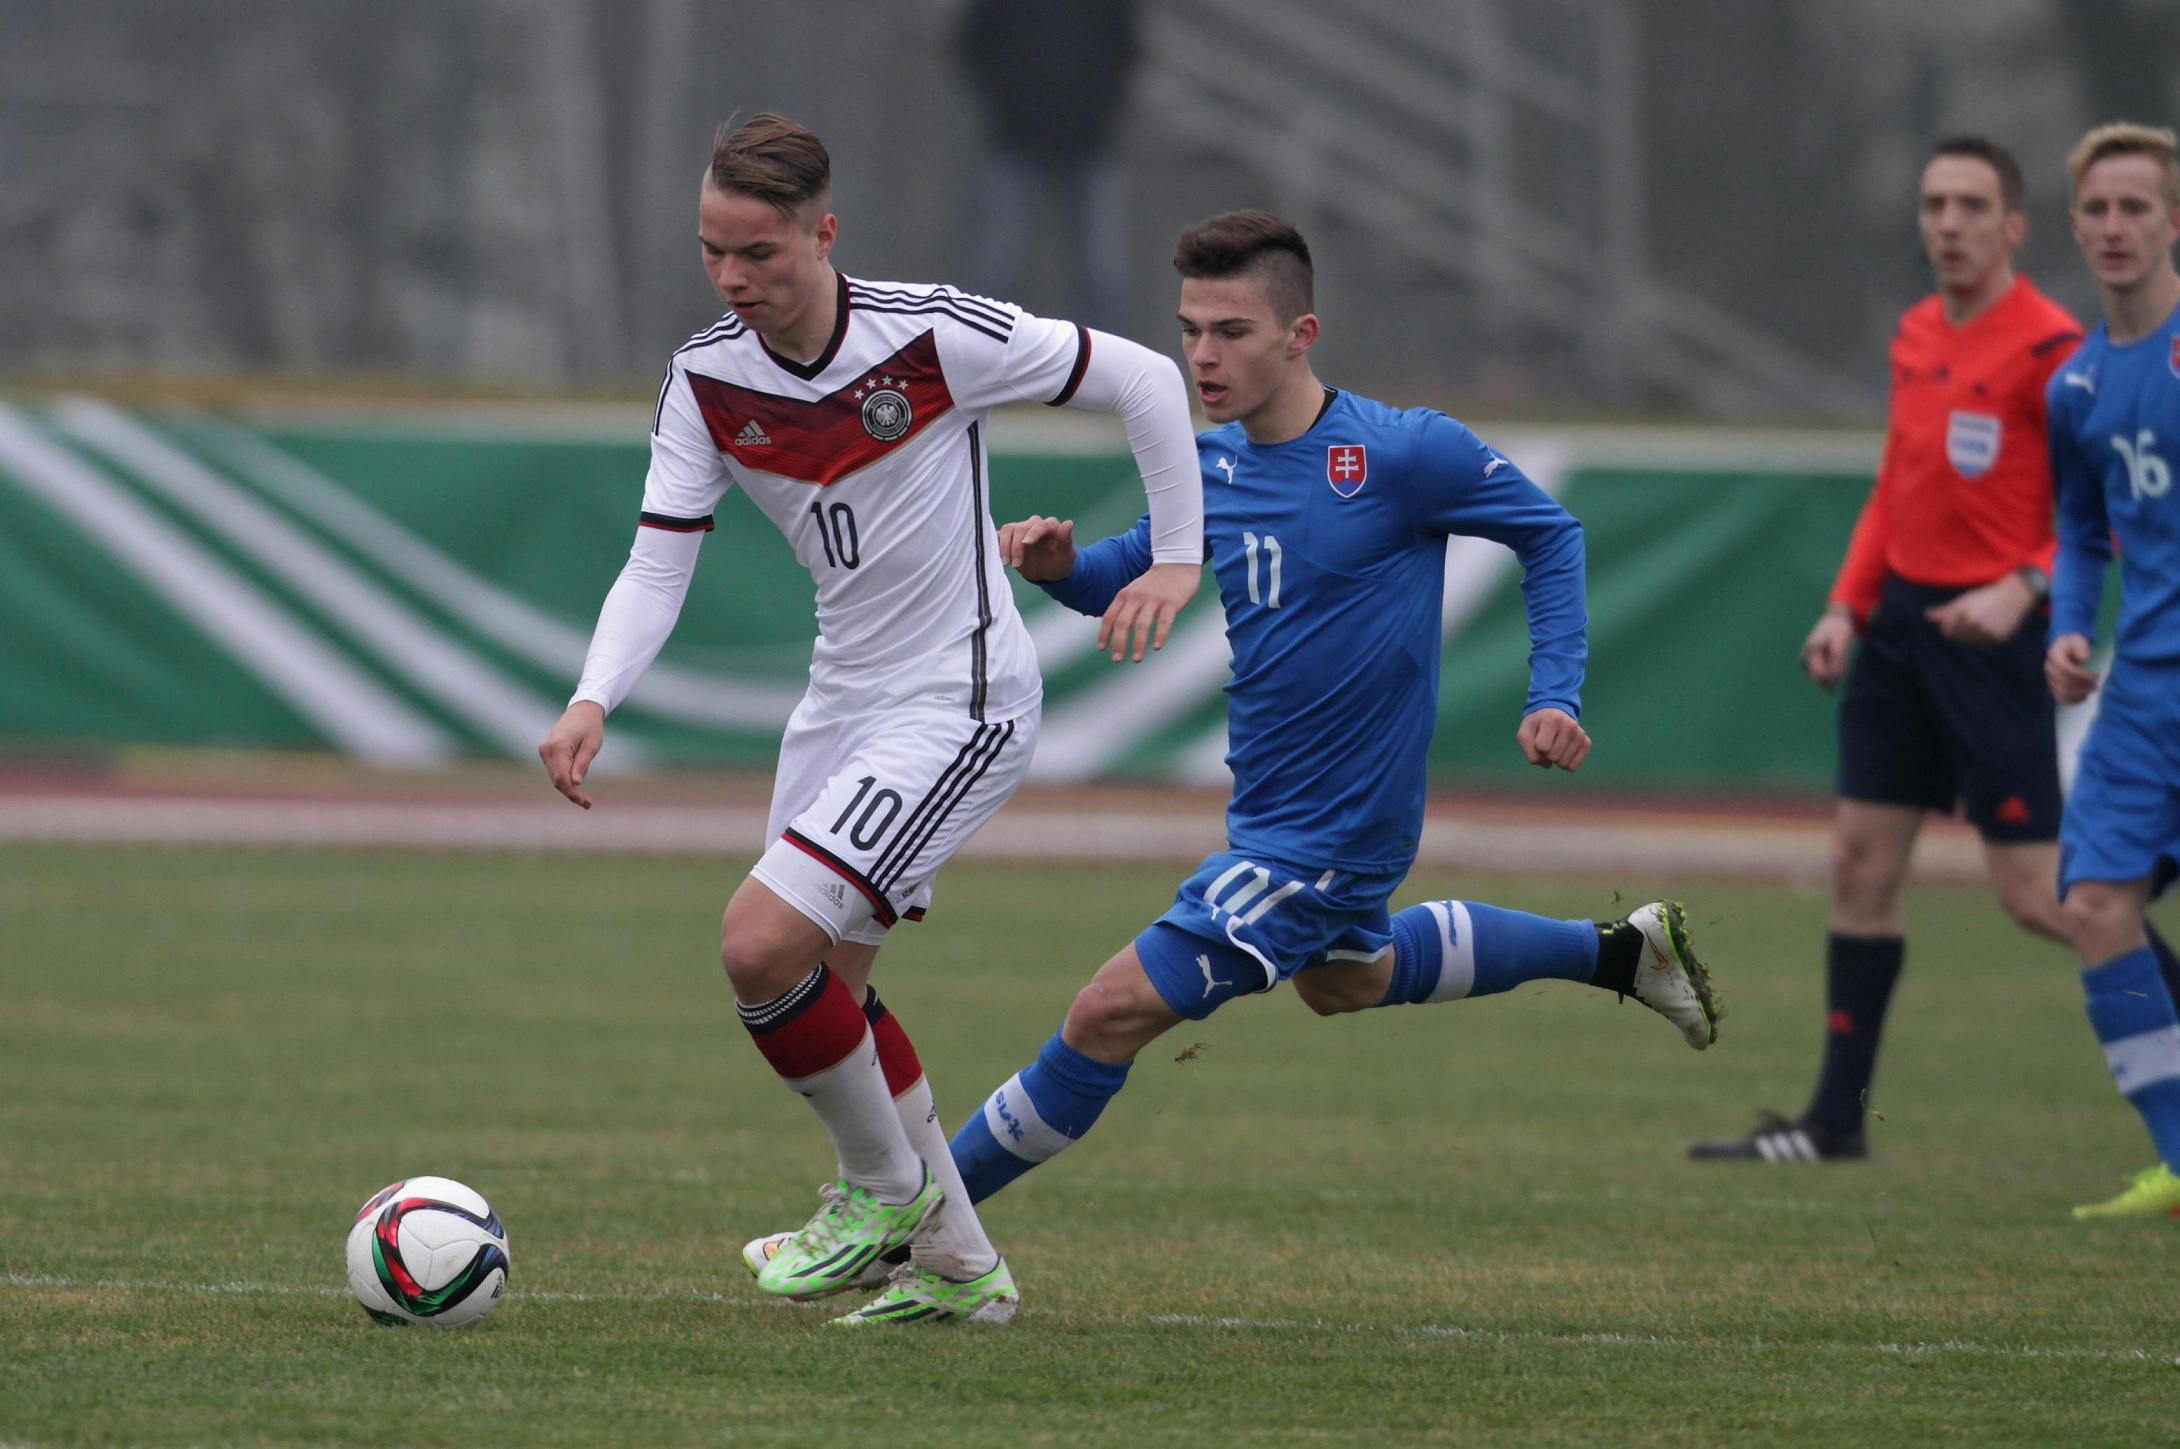 WETZLAR, GERMANY - MARCH 21:  Niklas Schmidt (Germany, L) tackles Lubomir Tupta during the UEFA U17 elite round match between Germany and Slovakia on March 21, 2015 in Wetzlar, Germany.  (Photo by Juergen Schwarz/Bongarts/Getty Images)